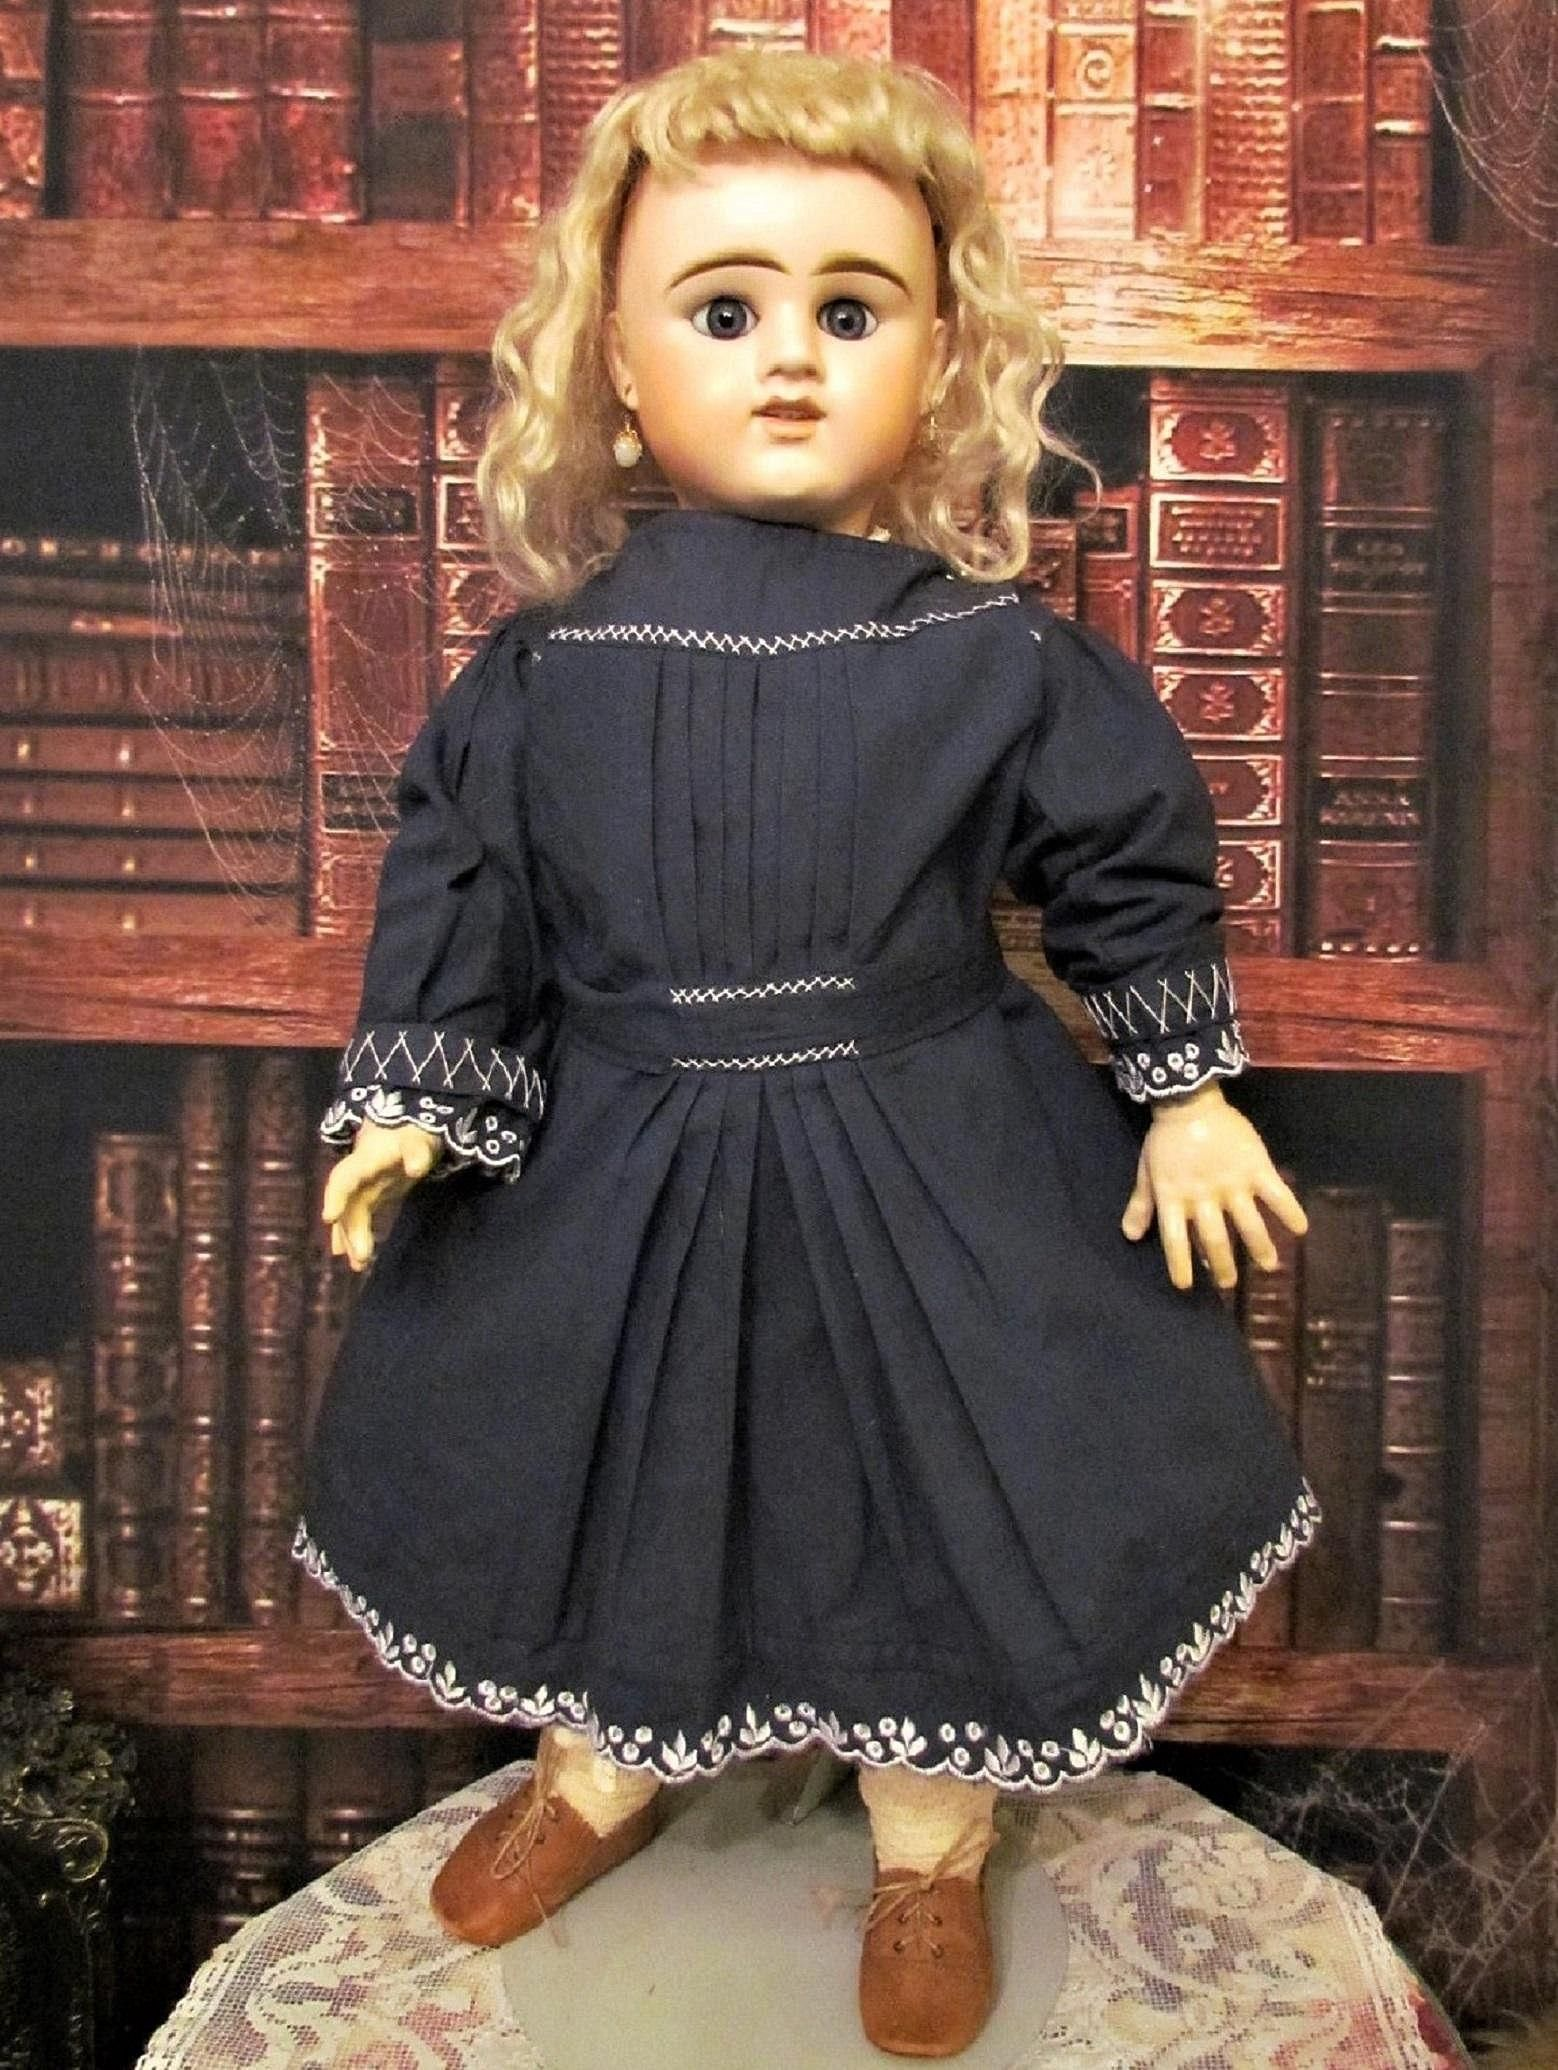 Vintage Navy Blue Cotton Doll Dress with Embroidery details Fits 24